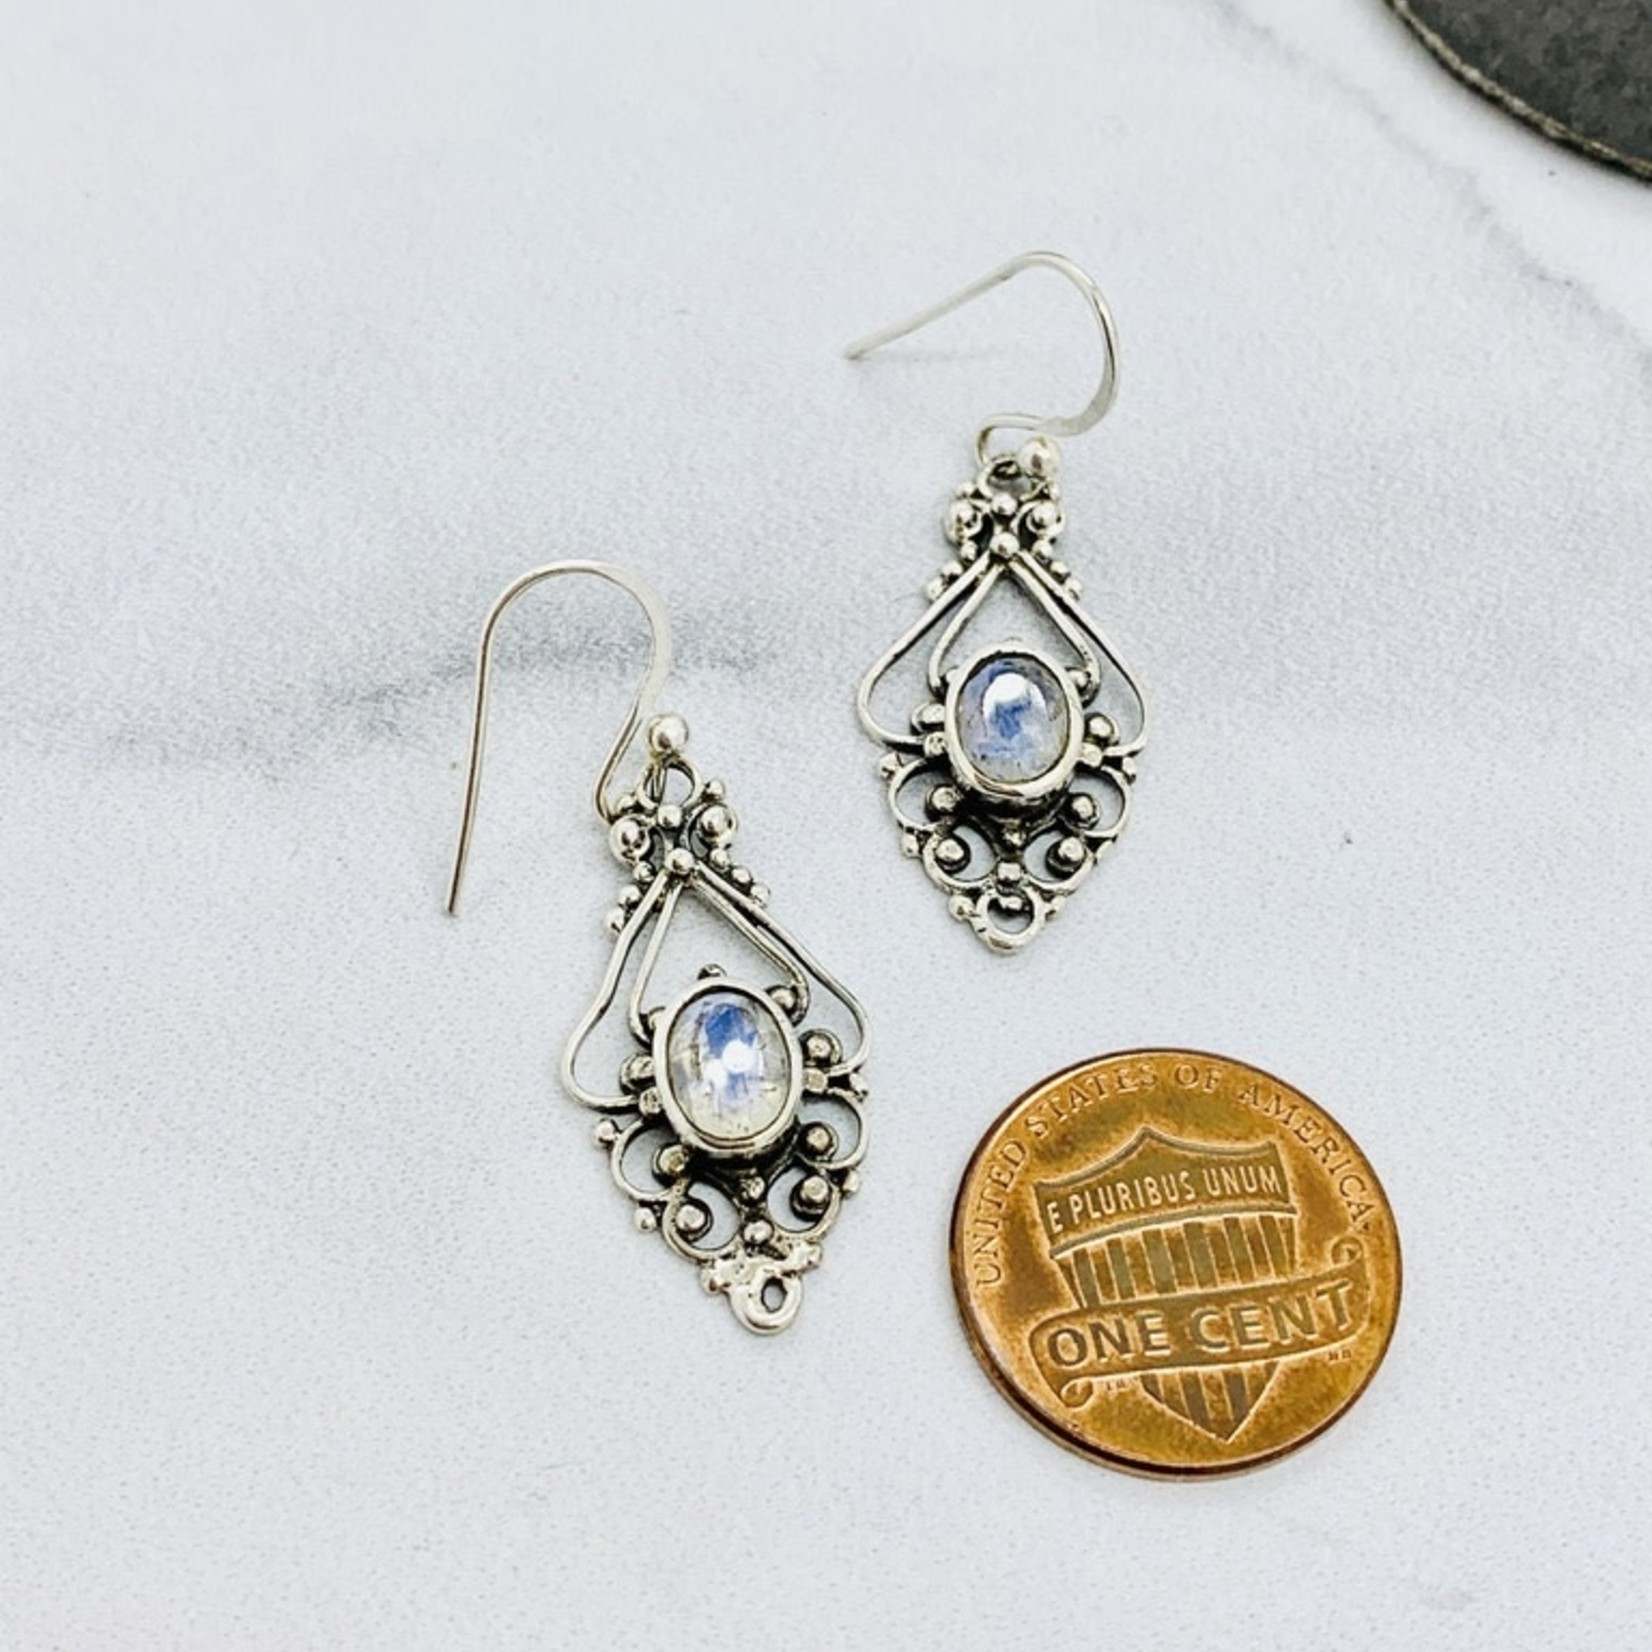 Sterling Silver Ornate Granulated Earrings with Rainbow Moonstone